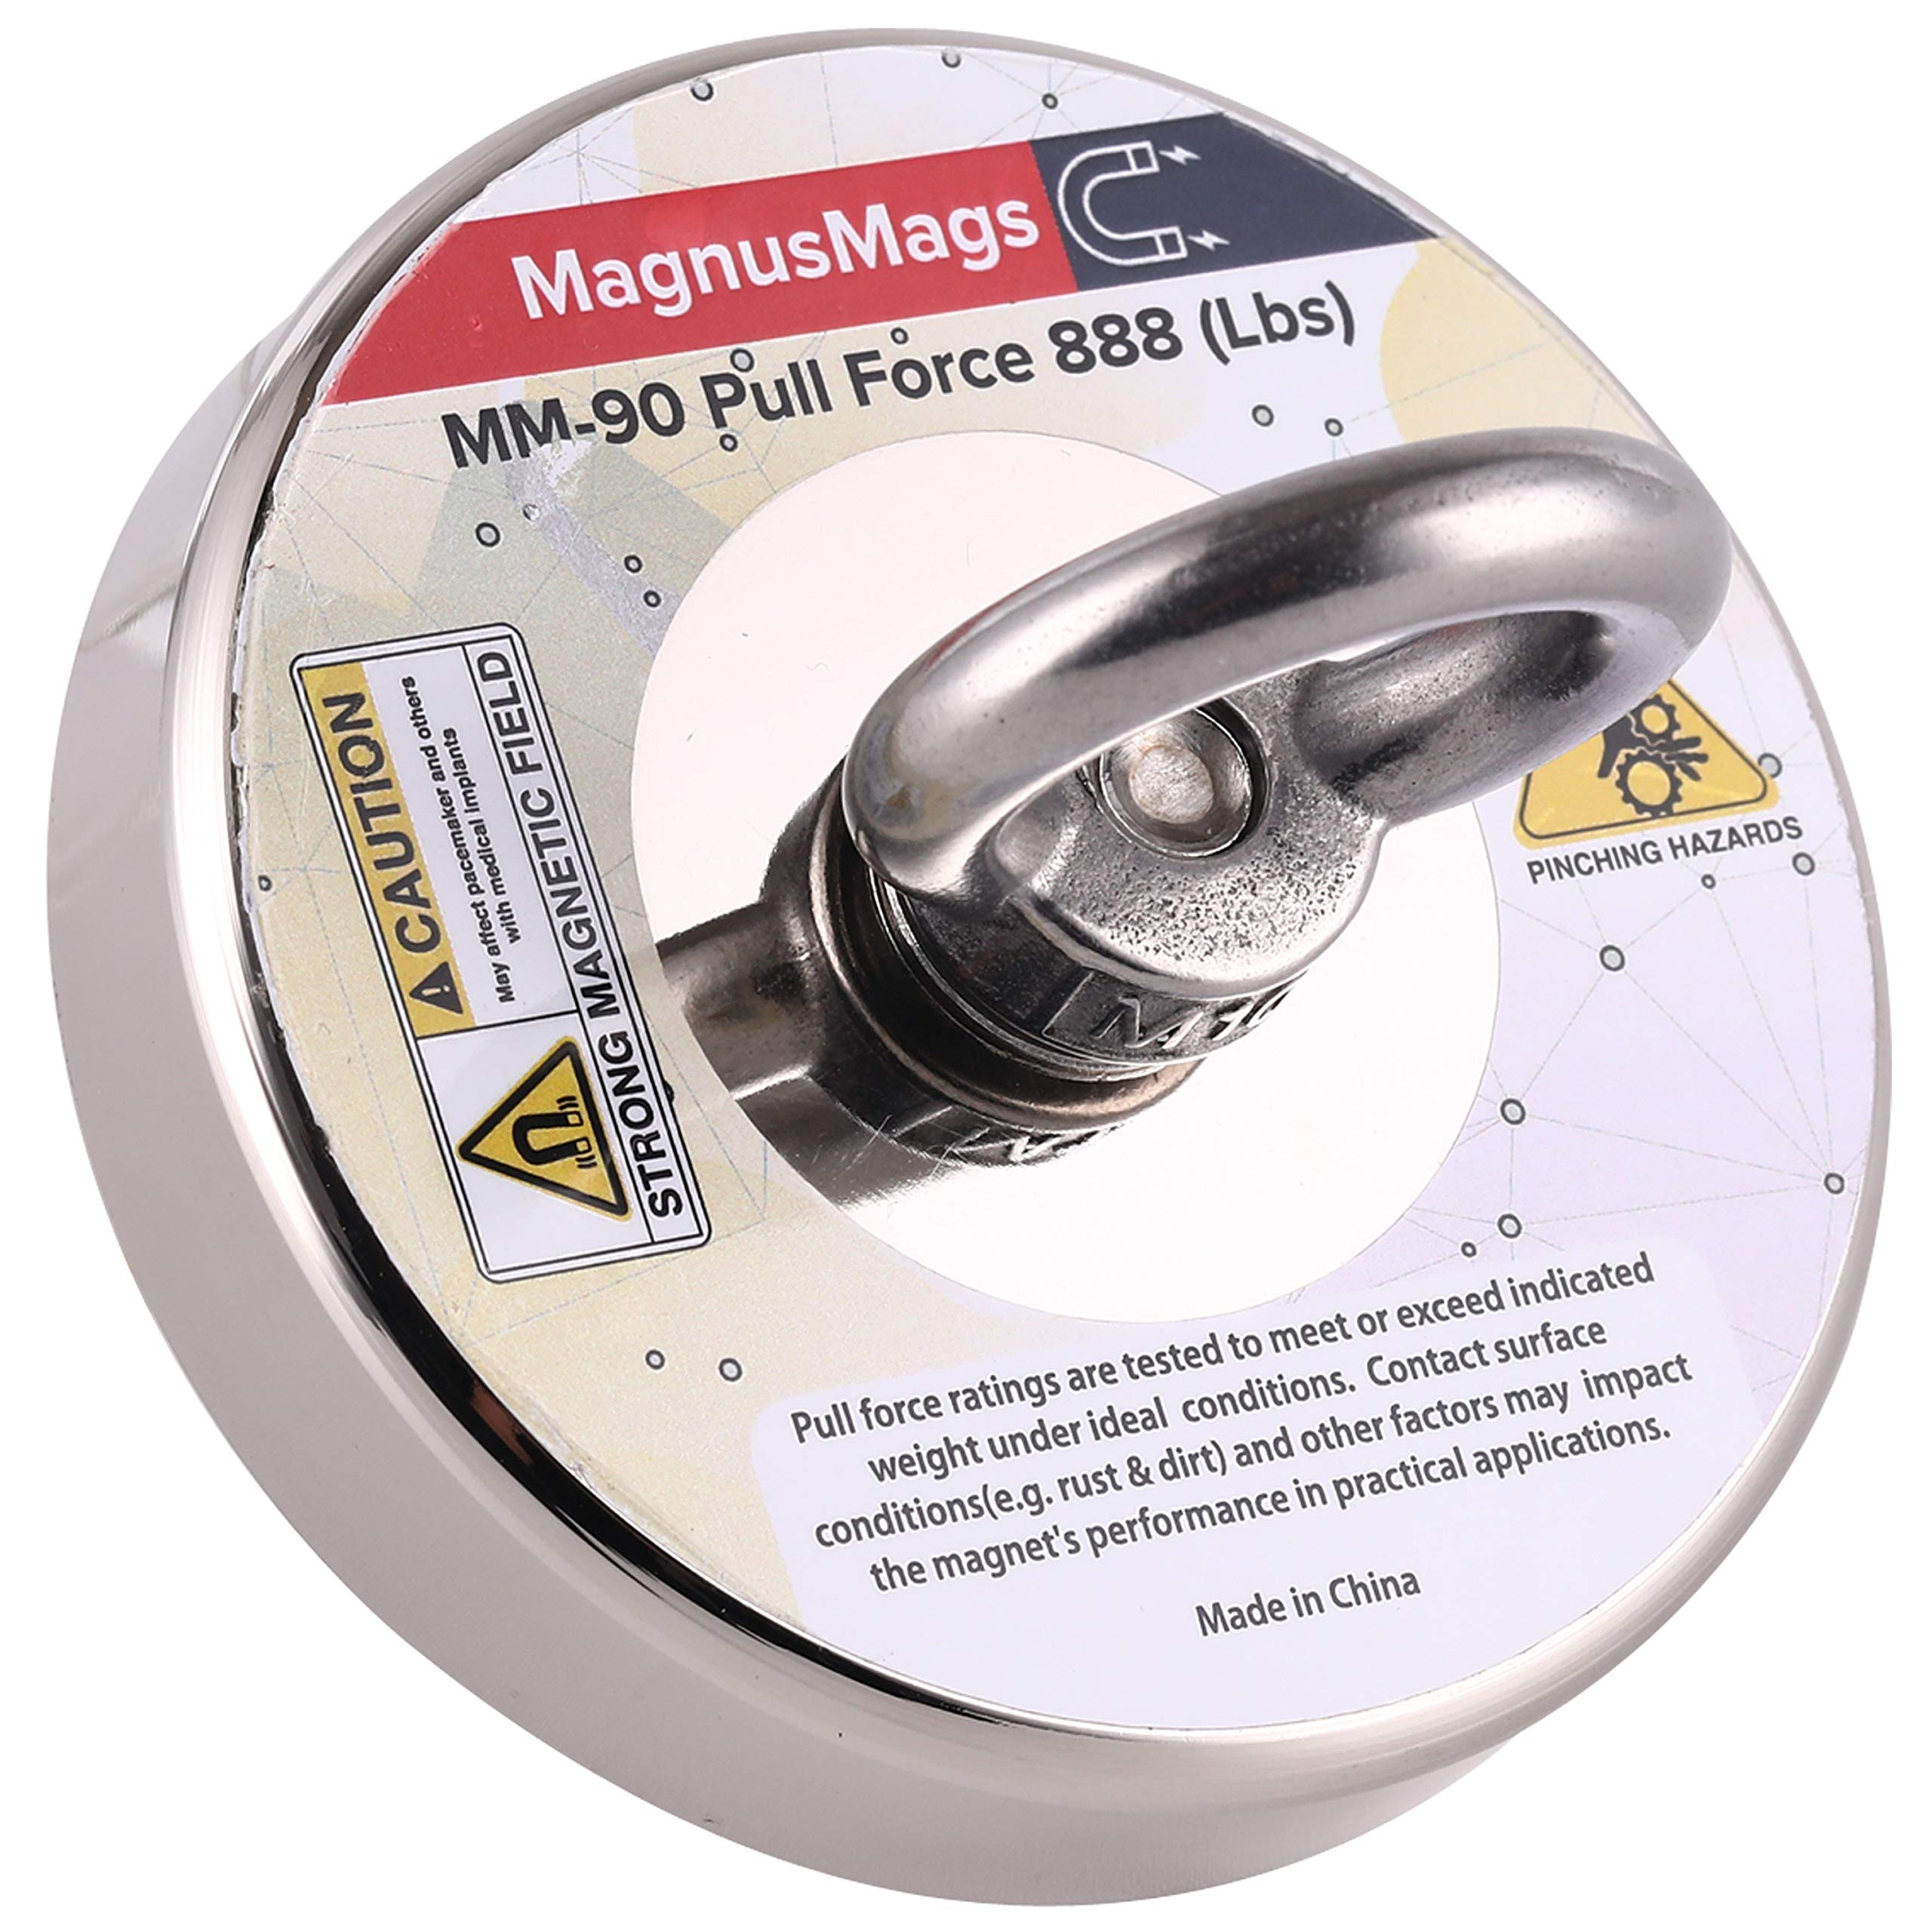 Powerful Fishing Magnets - MagnusMags 888LBS(403KG) Super Strong Pulling Force Neodymium Rare Earth Magnet for Magnetic Fishing Treasure in River - 3.54'' Diameter Heavy Duty Magnet for Magnet Fishing